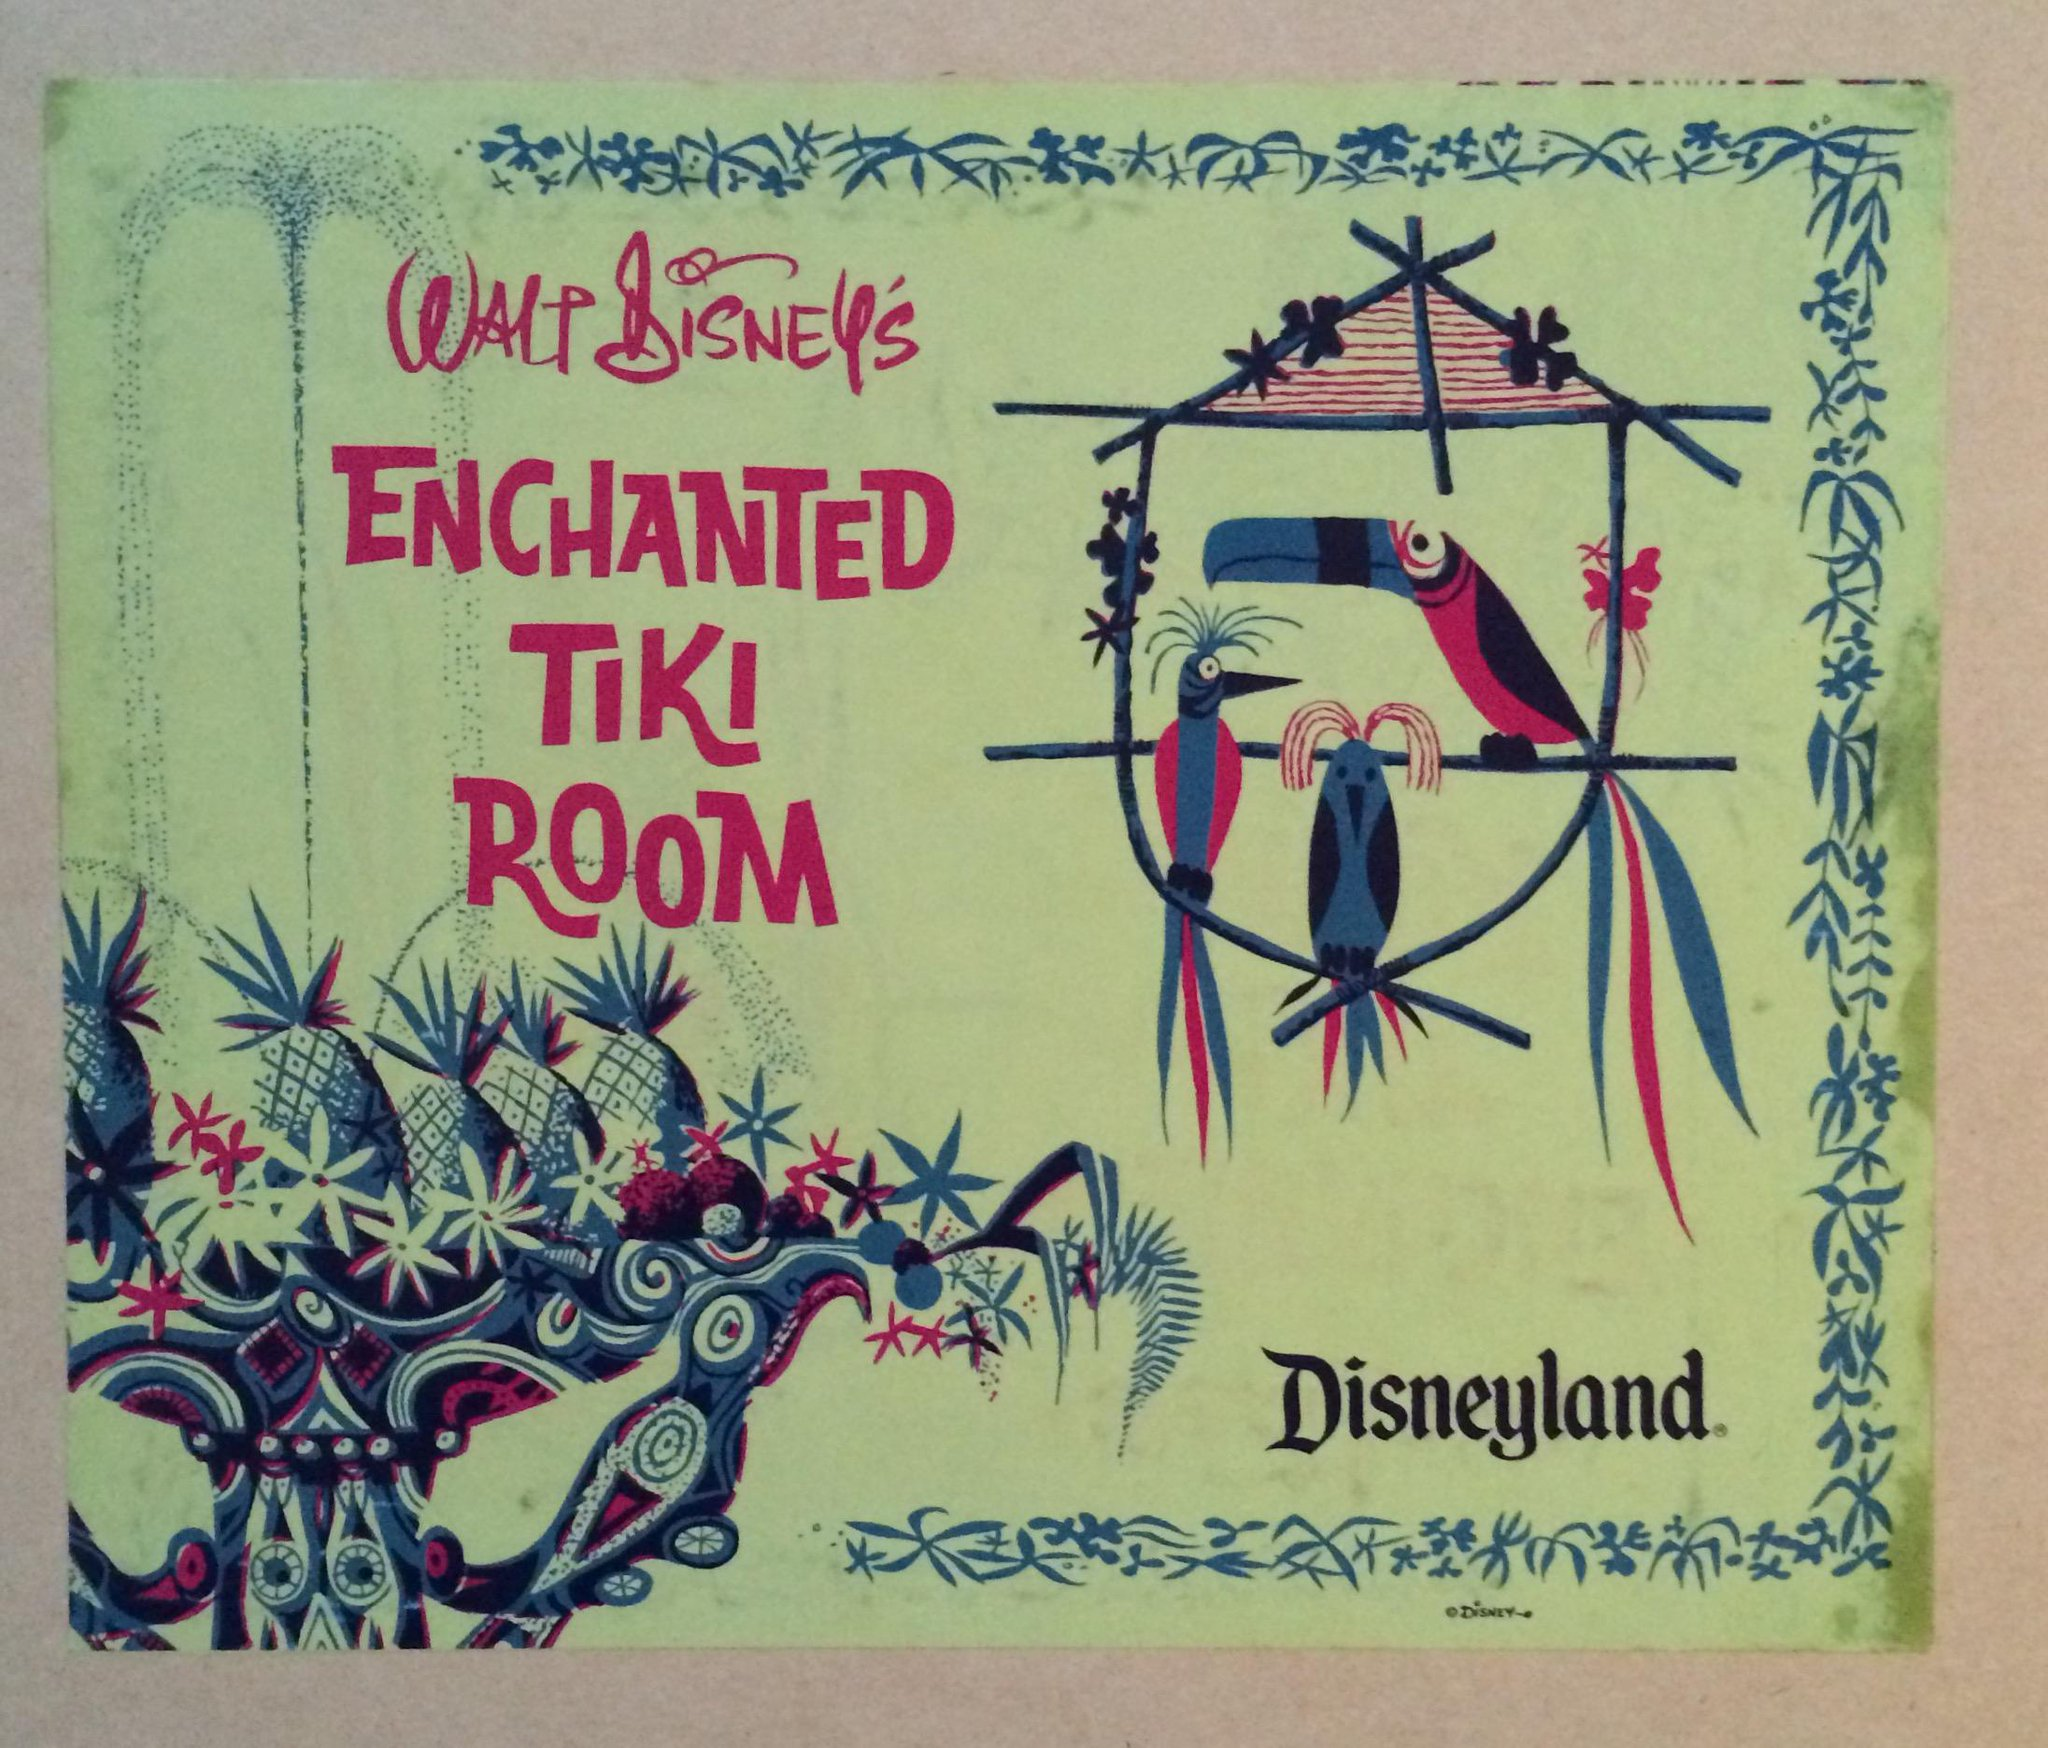 Not sure of the artist (the birds look Marc Davis-esque), but I love this Disneyland Tiki Room art. http://t.co/BTOPe2WIeO